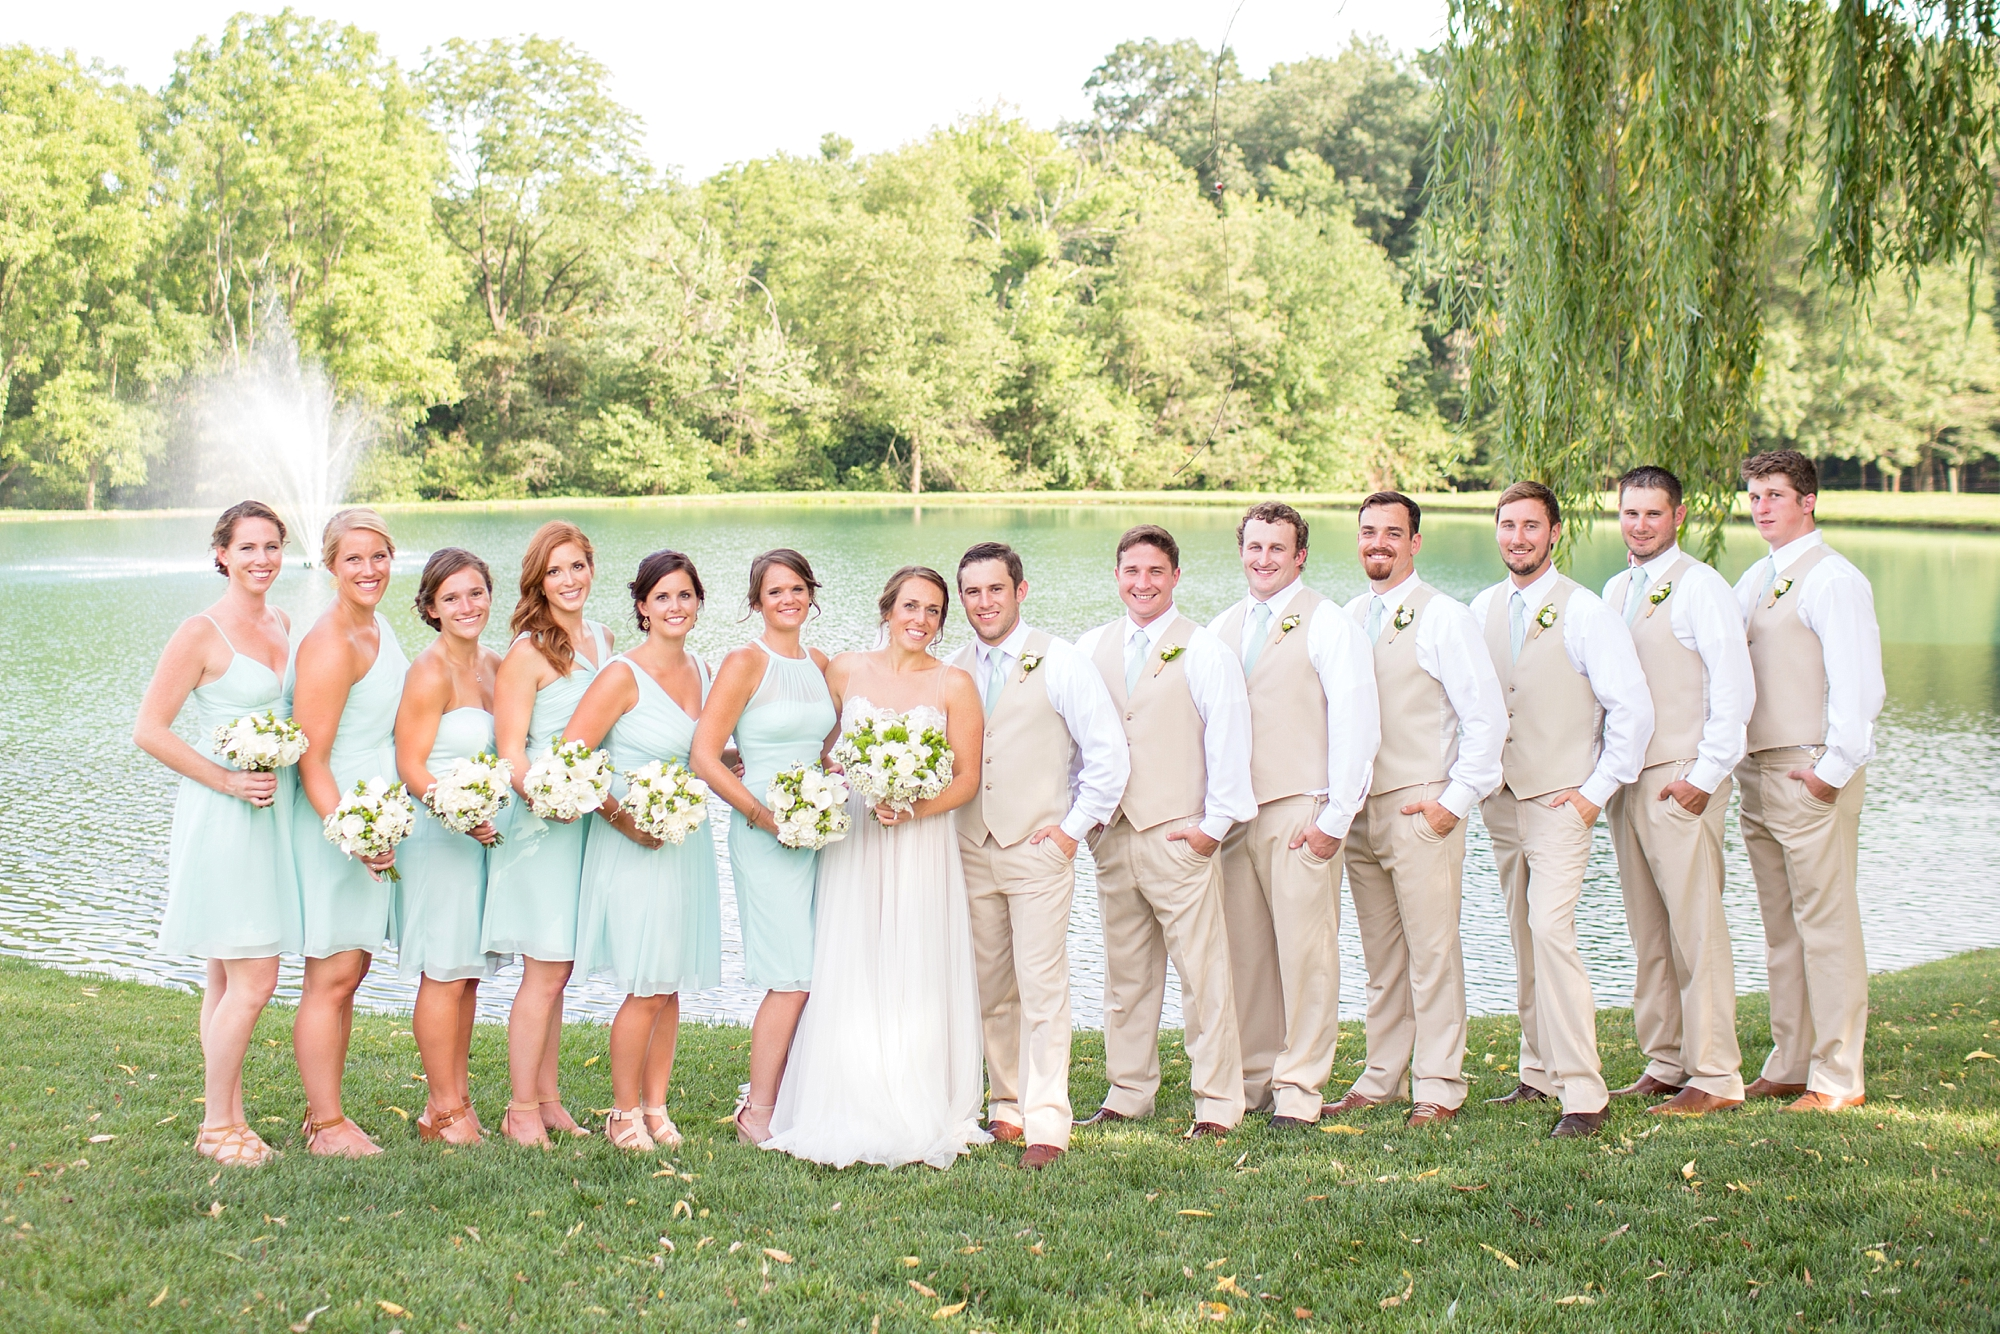 Herndon 2-Bridal Party-614_anna grace photography baltimore maryland wedding photographer pond view farm photo.jpg